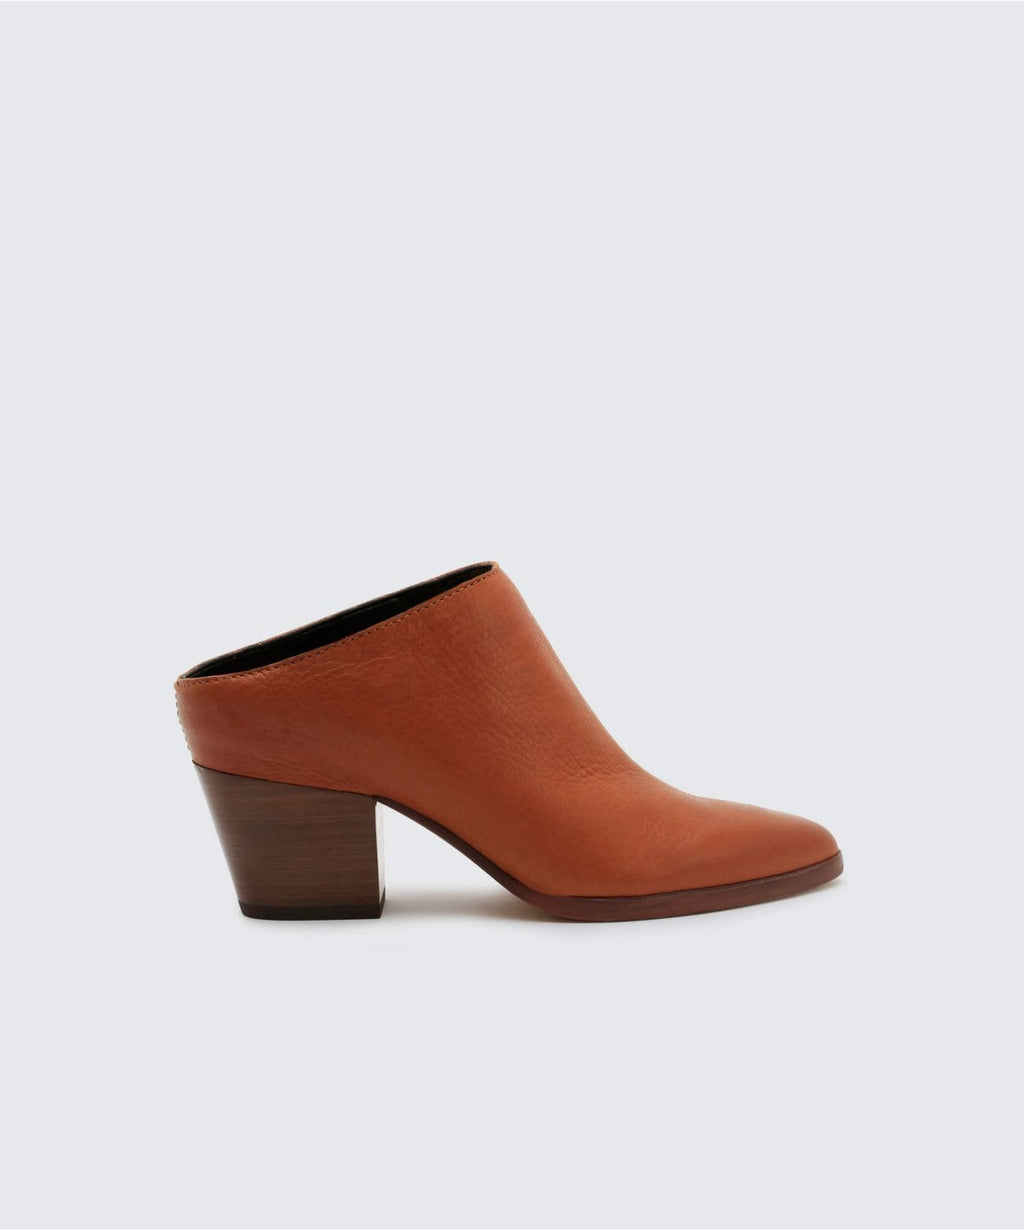 Dolce Vita Roya Mule Brown Leather